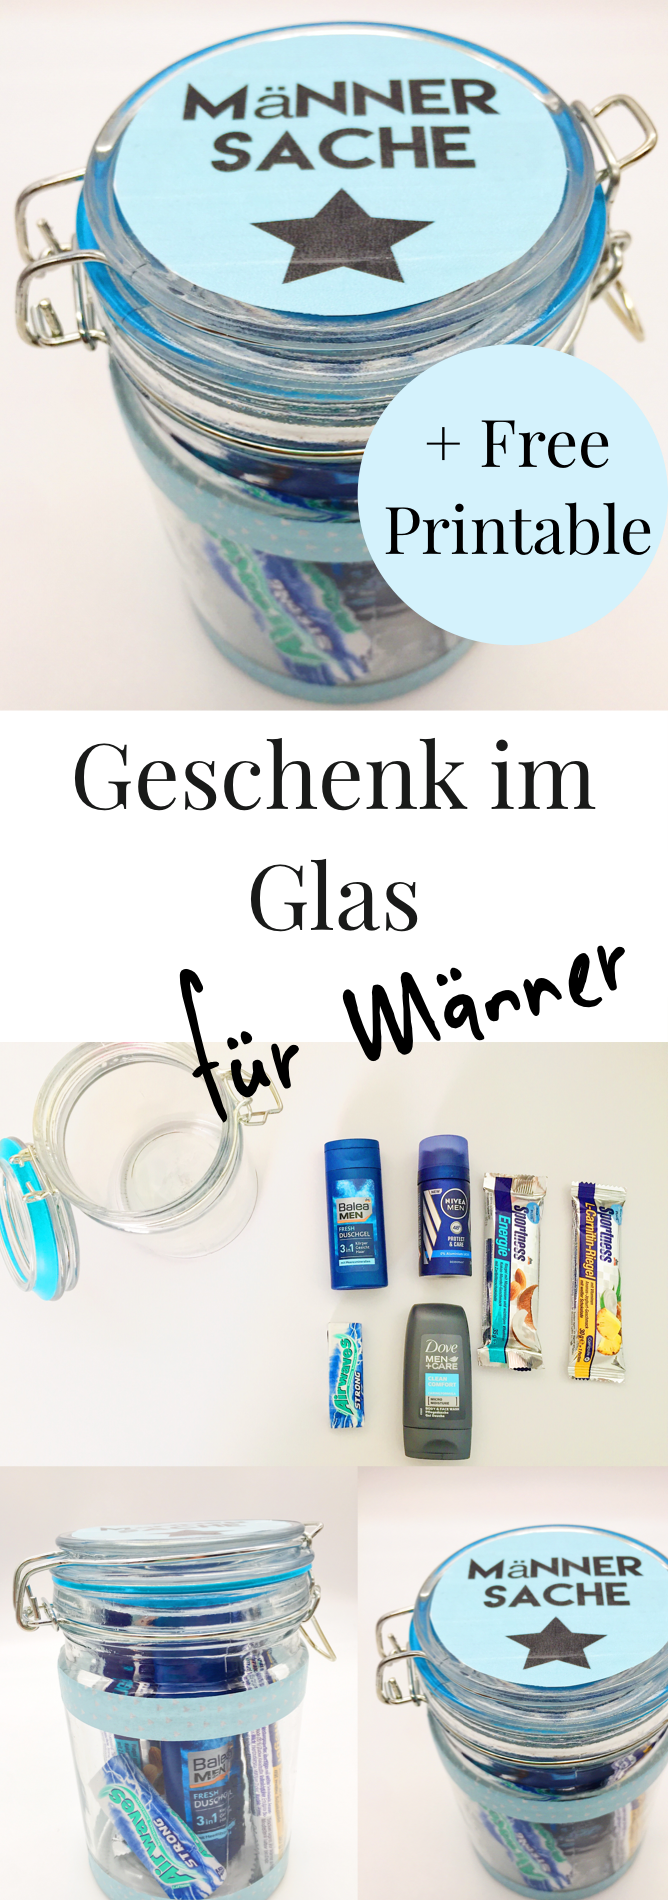 diy geschenke im glas selber machen pinterest diys diy xmas gifts and gift. Black Bedroom Furniture Sets. Home Design Ideas